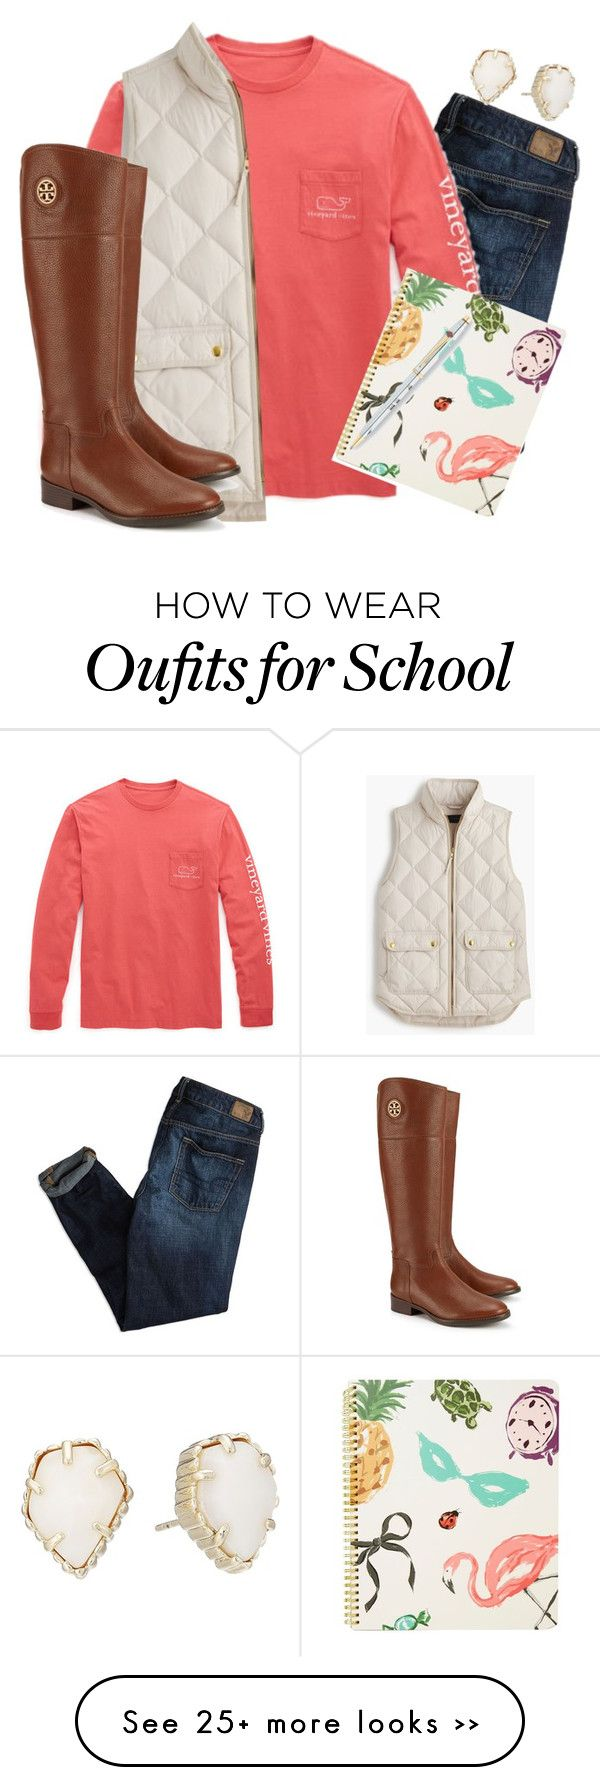 """School"" by sassysouthernprep on Polyvore featuring American Eagle Outfitters, Vineyard Vines, J.Crew, Tory Burch, Kendra Scott, Kate Spade and vintage"